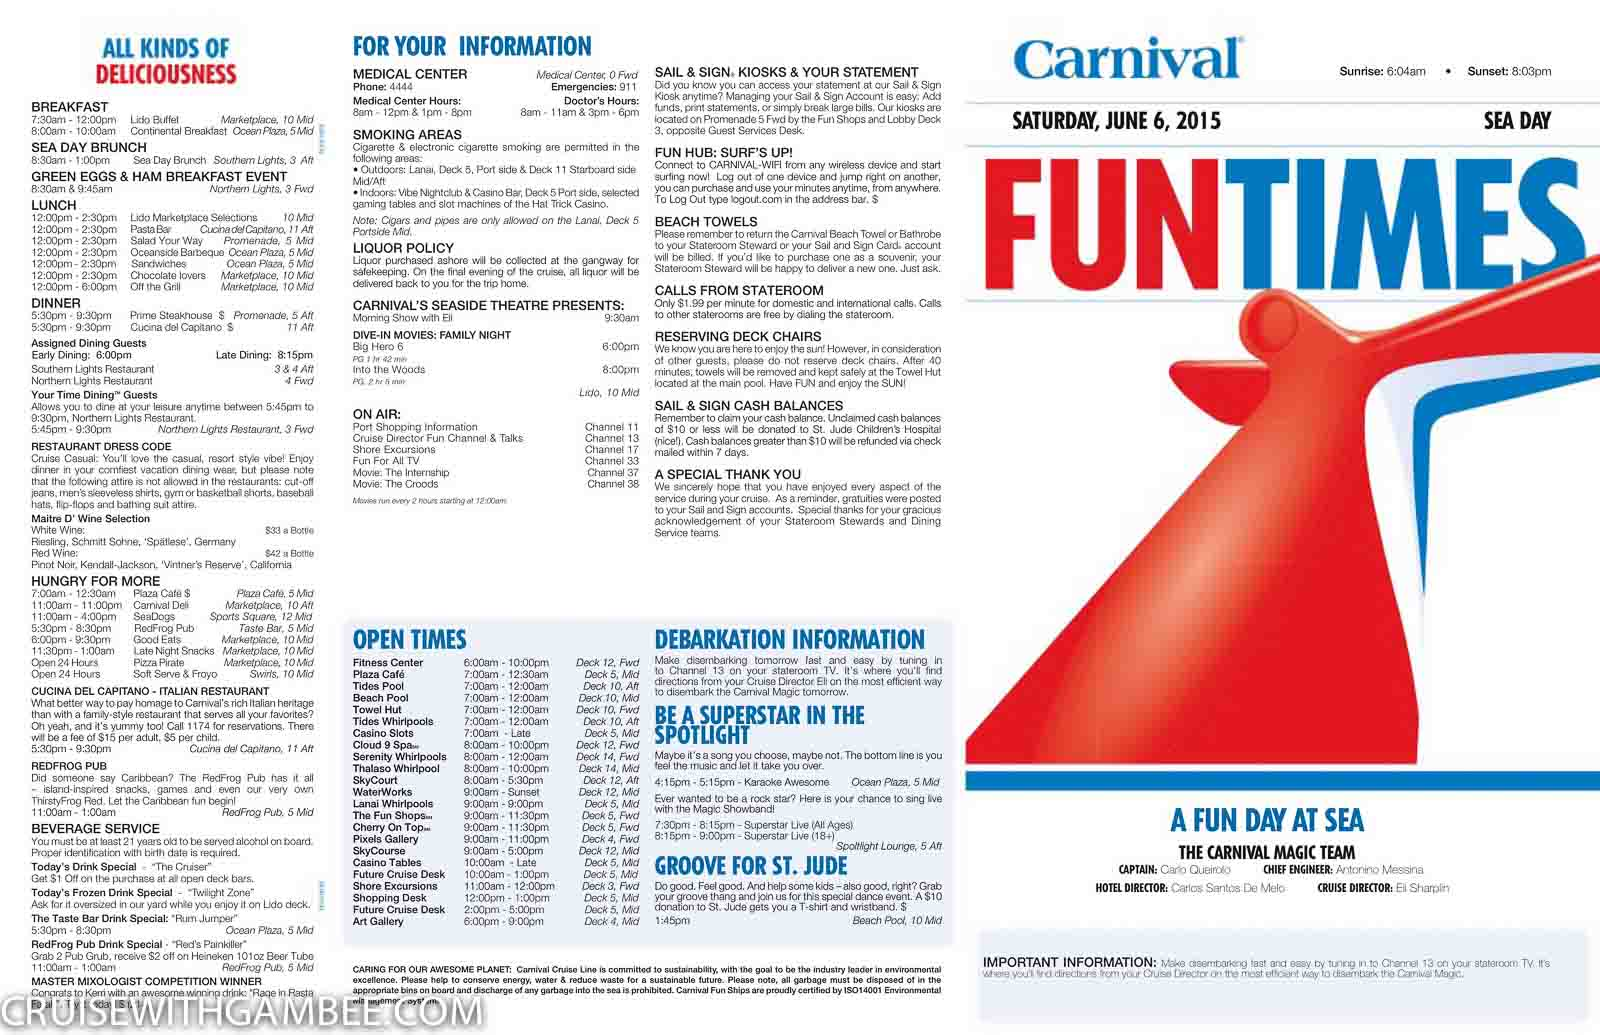 Carnival Magic Funtimes Daily Itinerary Cruise With Gambee